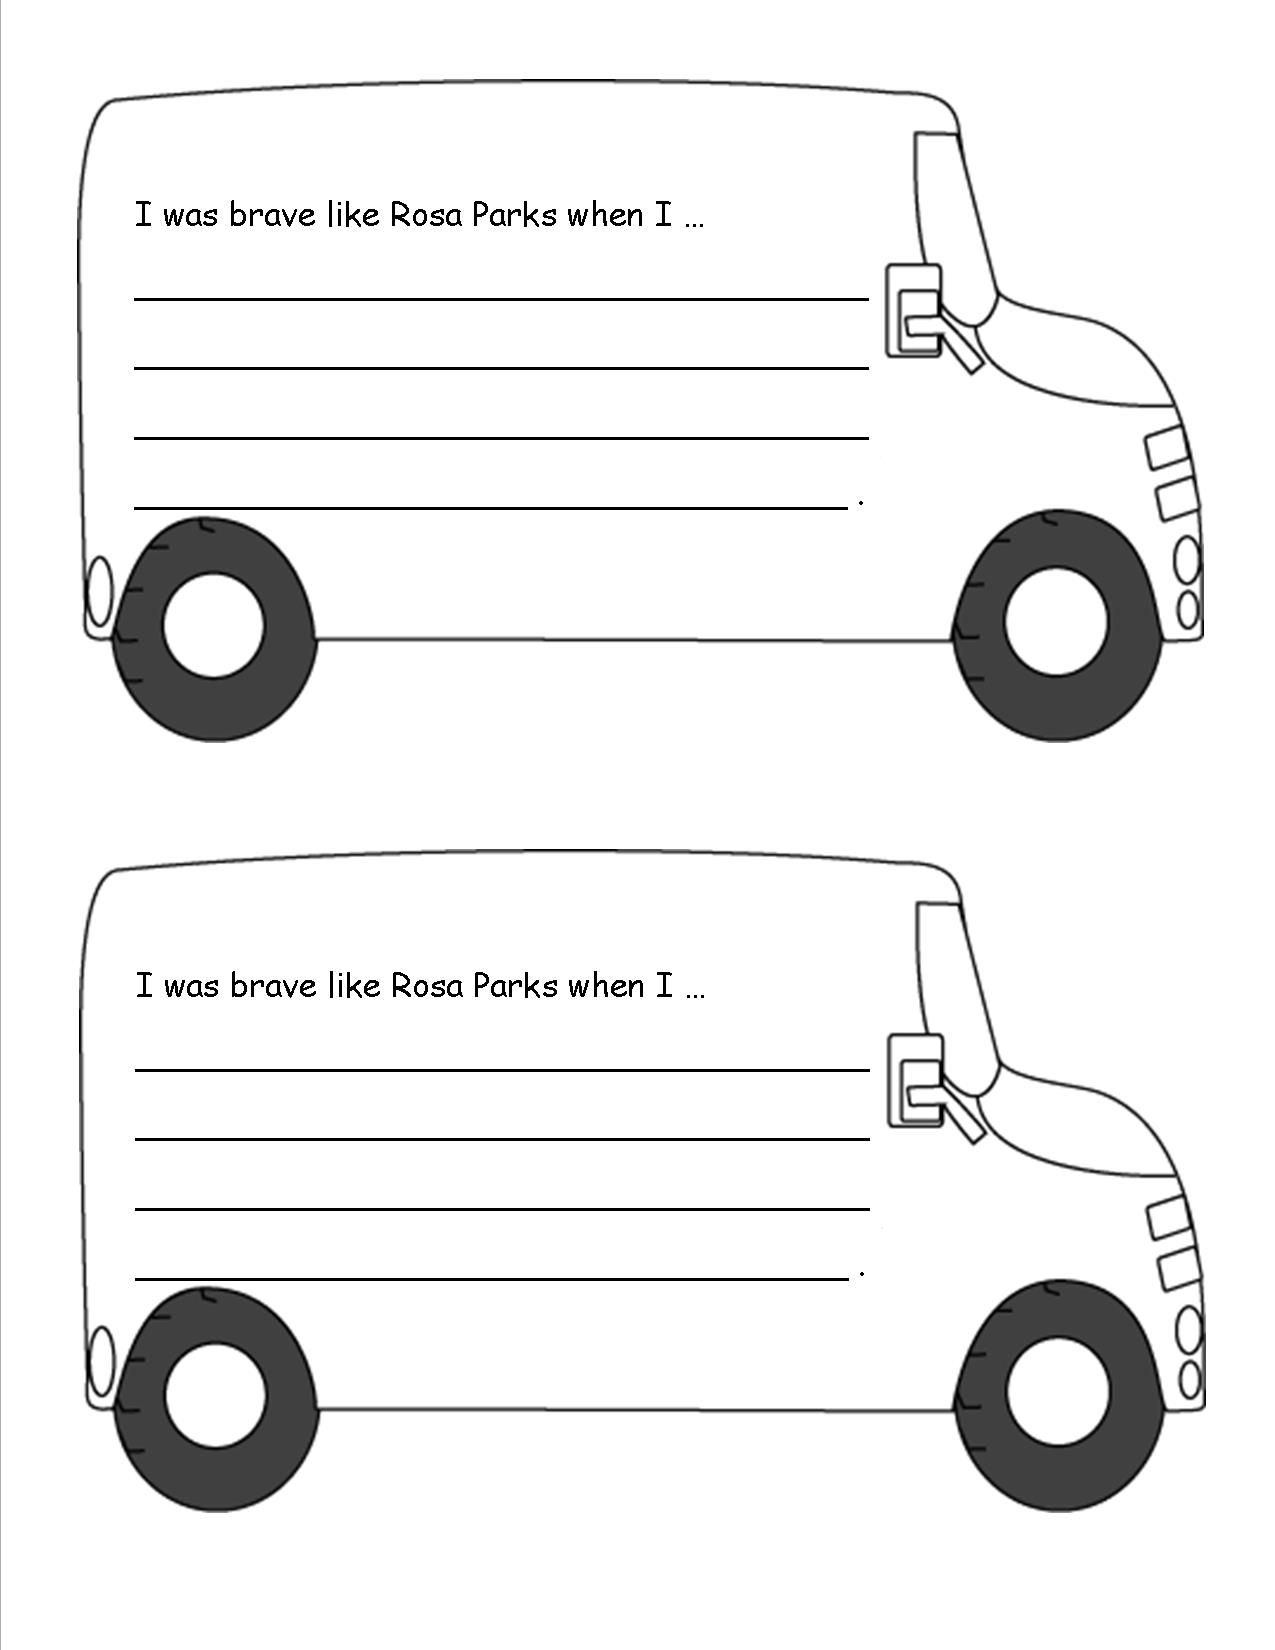 rosa parks worksheet this activity is great for students learning about rosa parks during black history month they can relate to rosa parks by explaining  [ 1275 x 1650 Pixel ]